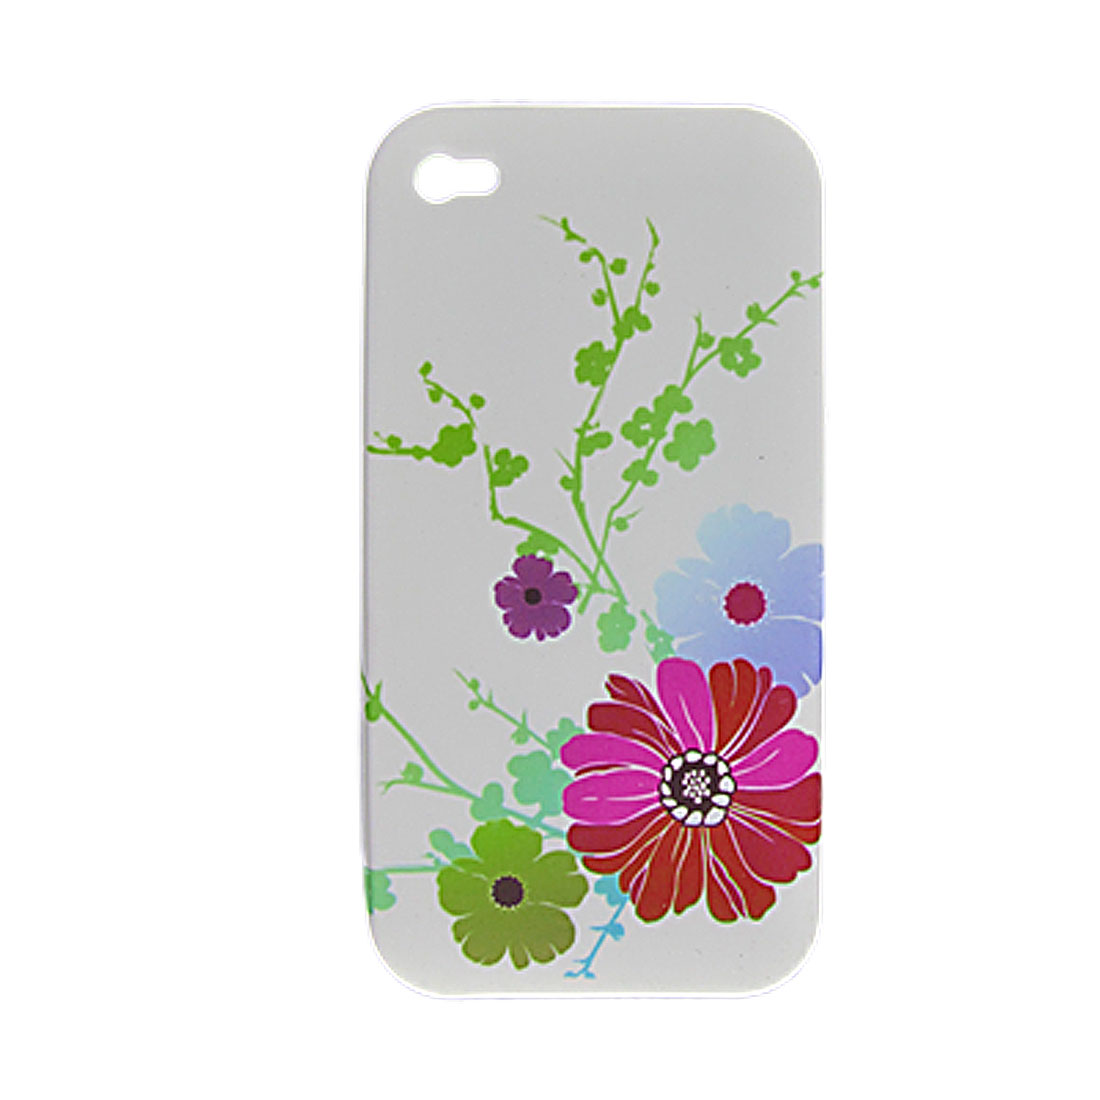 Flower Pattern White Soft Plastic Case + Screen Protector for iPhone 4 4G